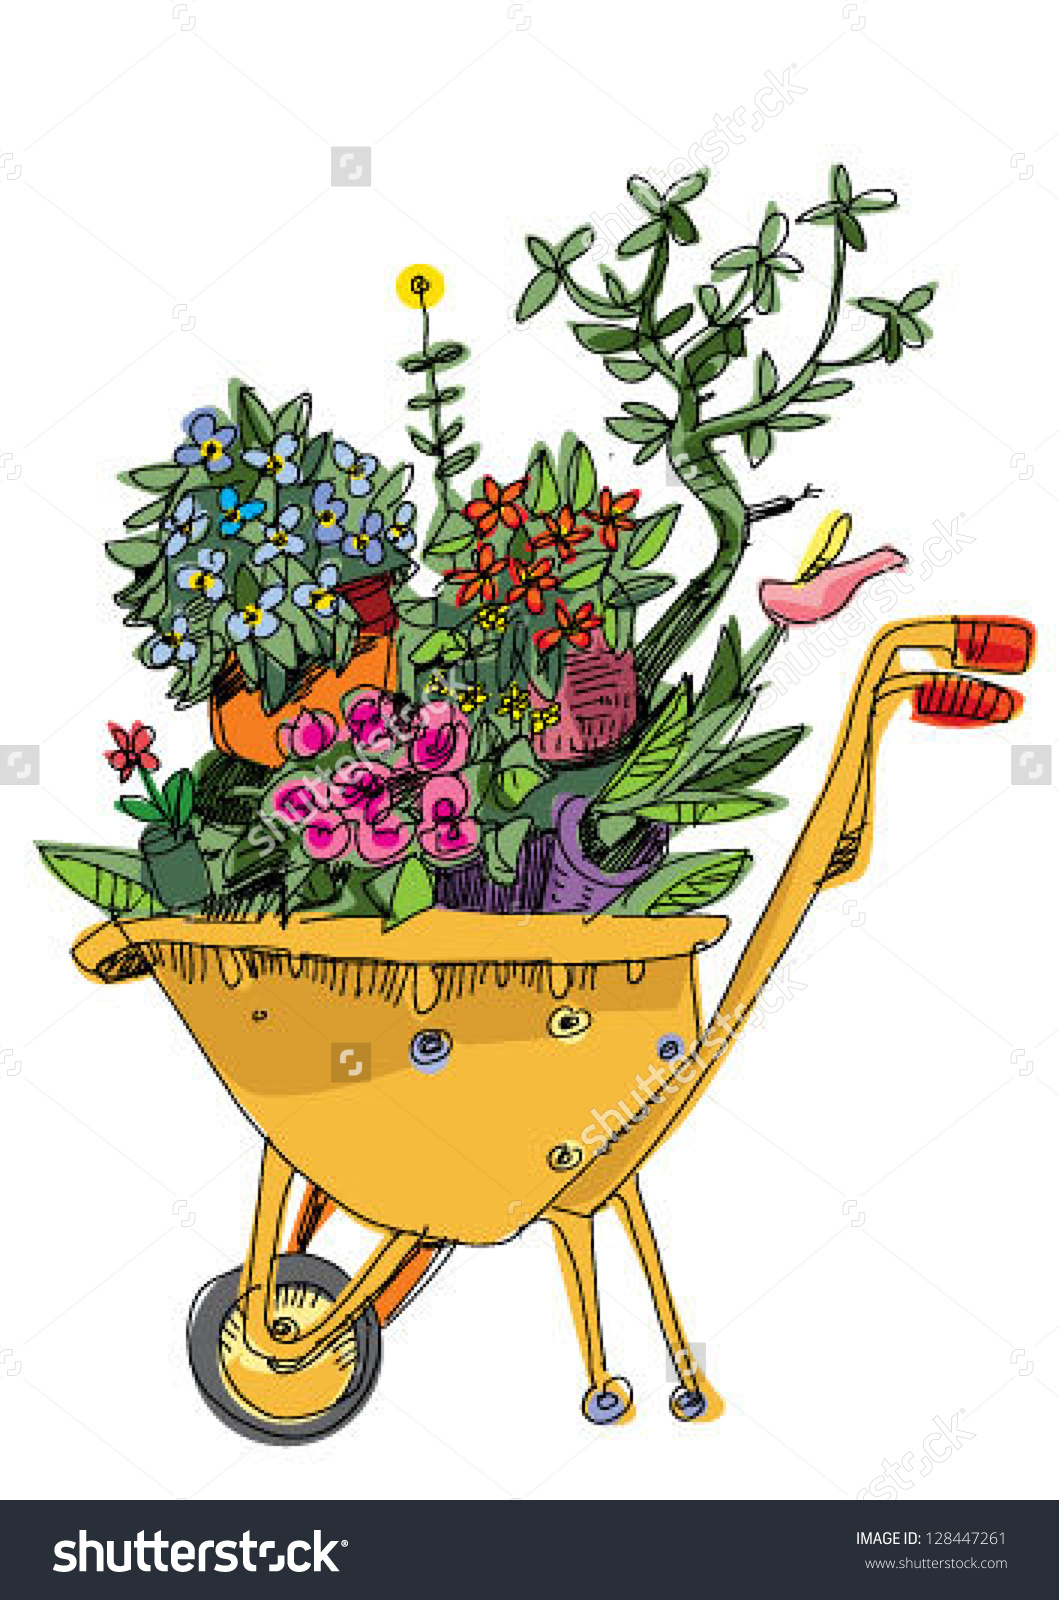 wheelbarrow with flowers clipart #12